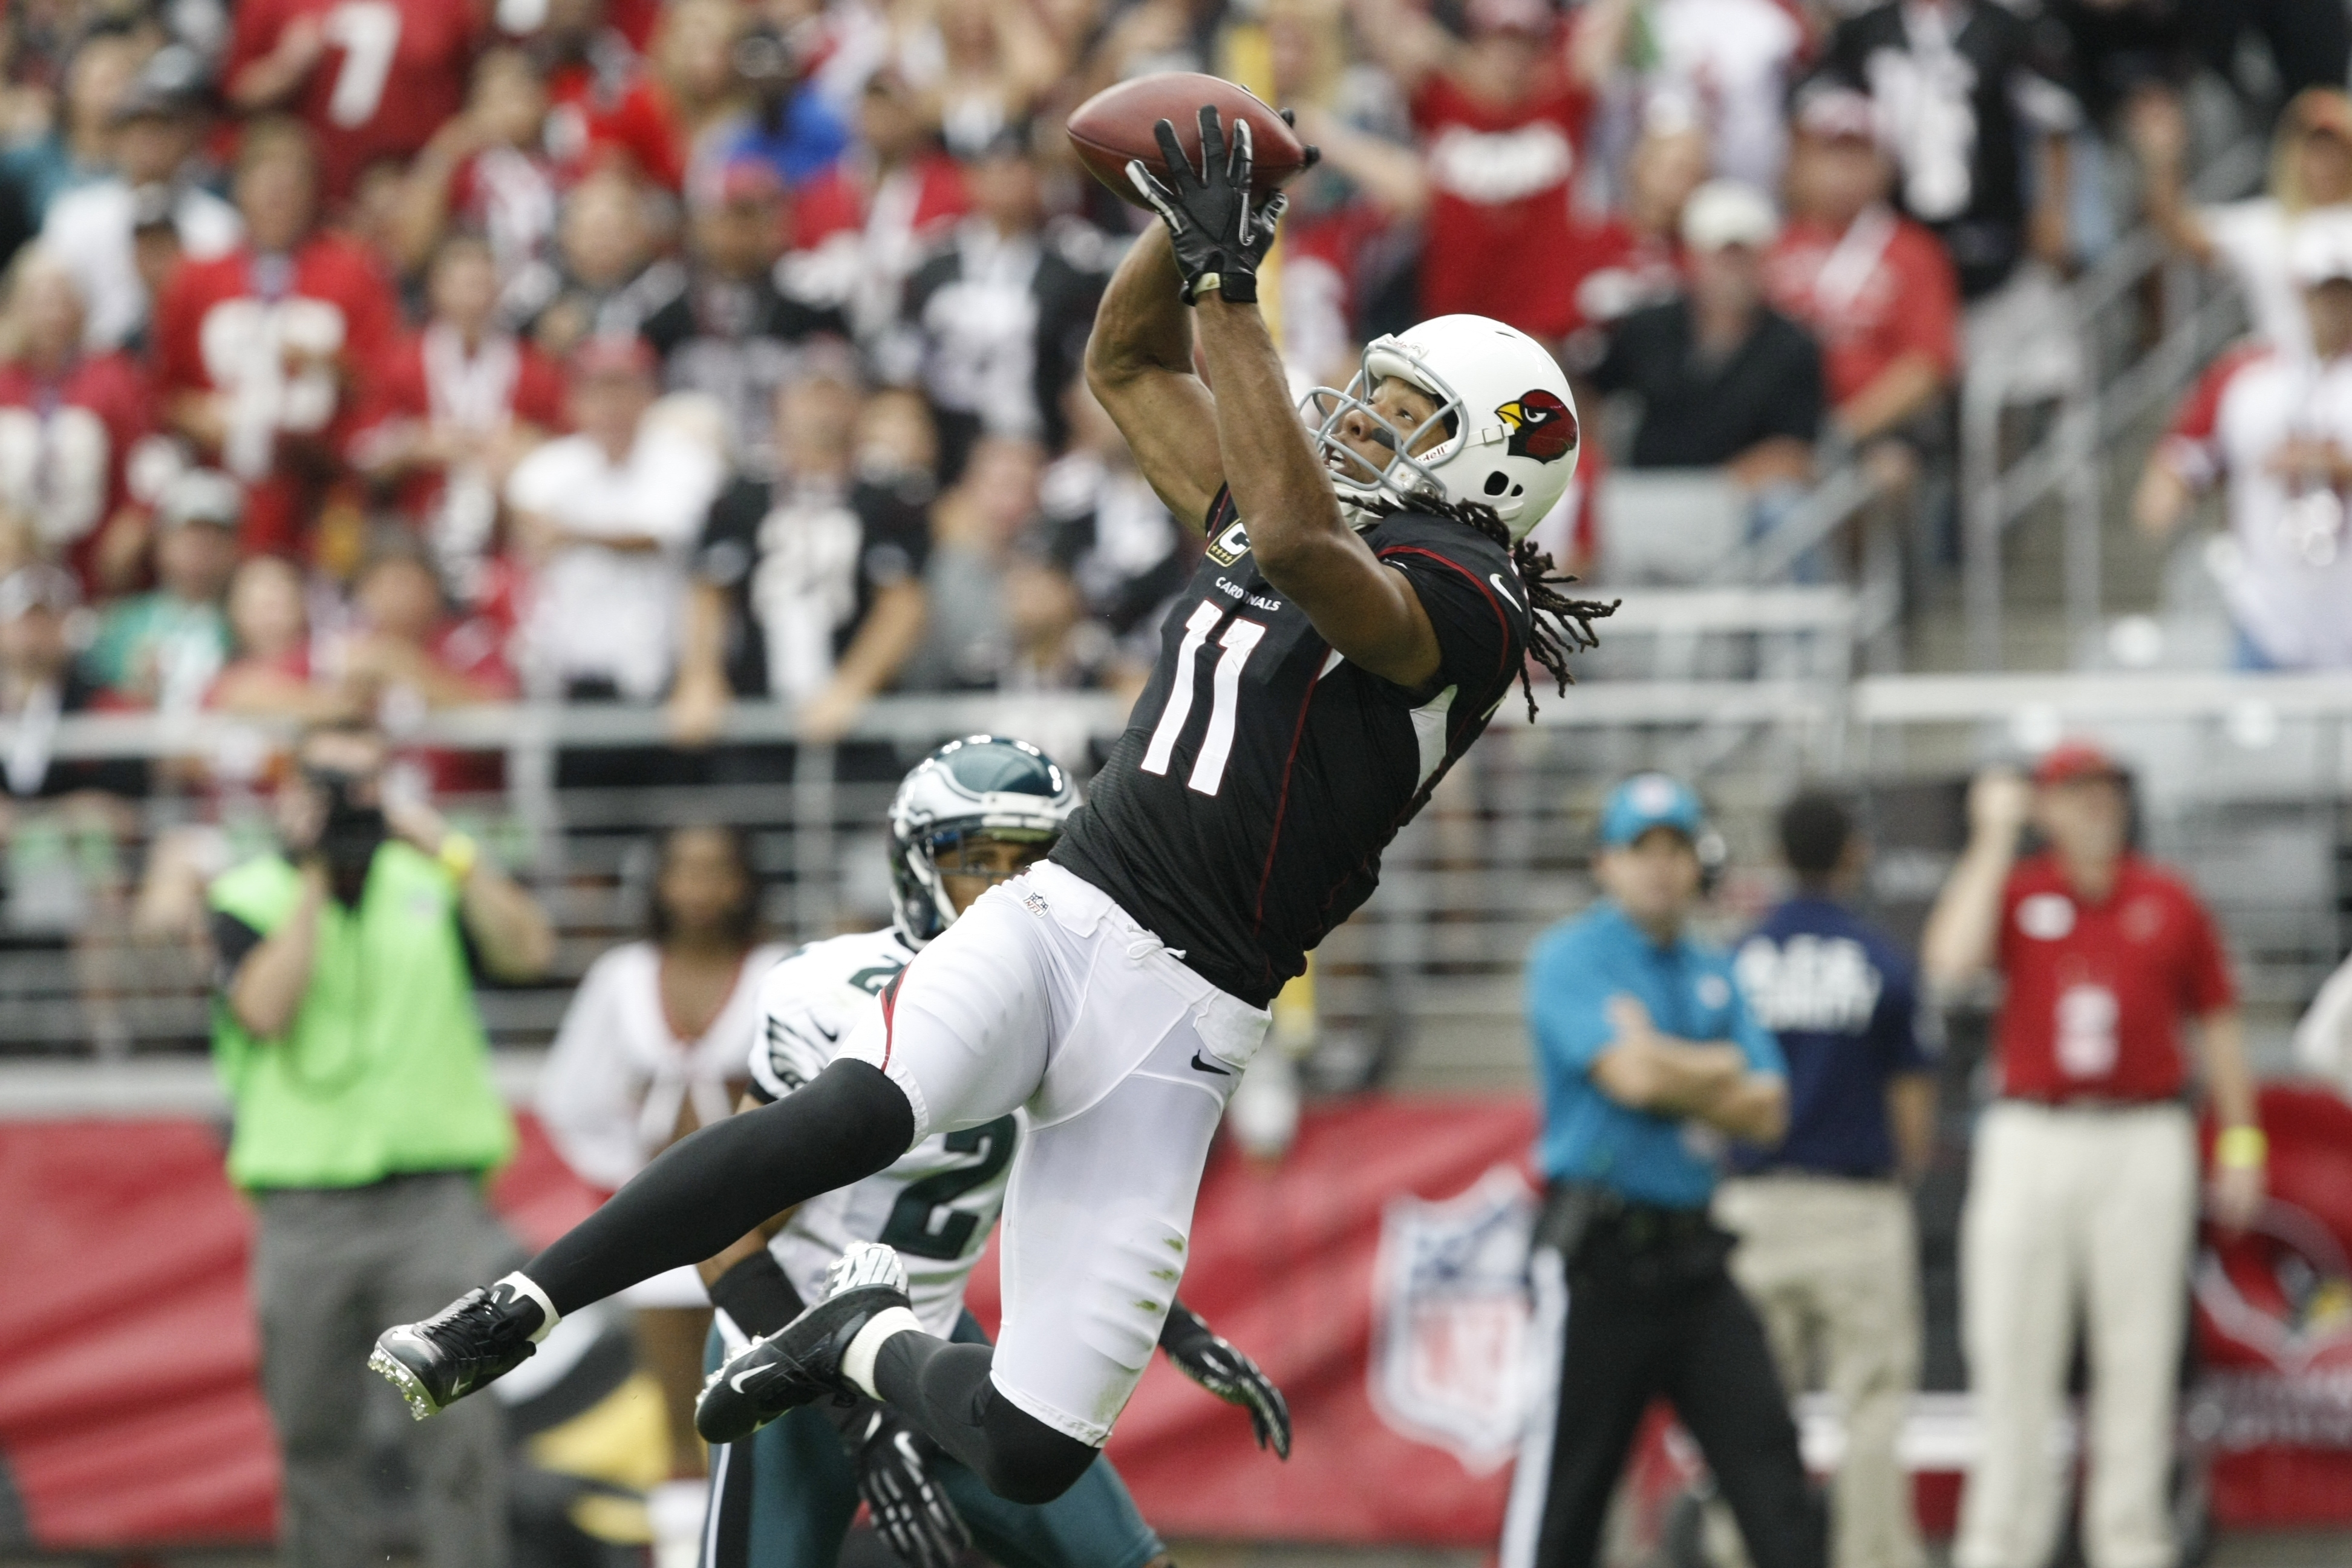 Best Images Of Larry Fitzgerald's Td Catches, 15 Years After for Larry Fitzgerald Super Bowl